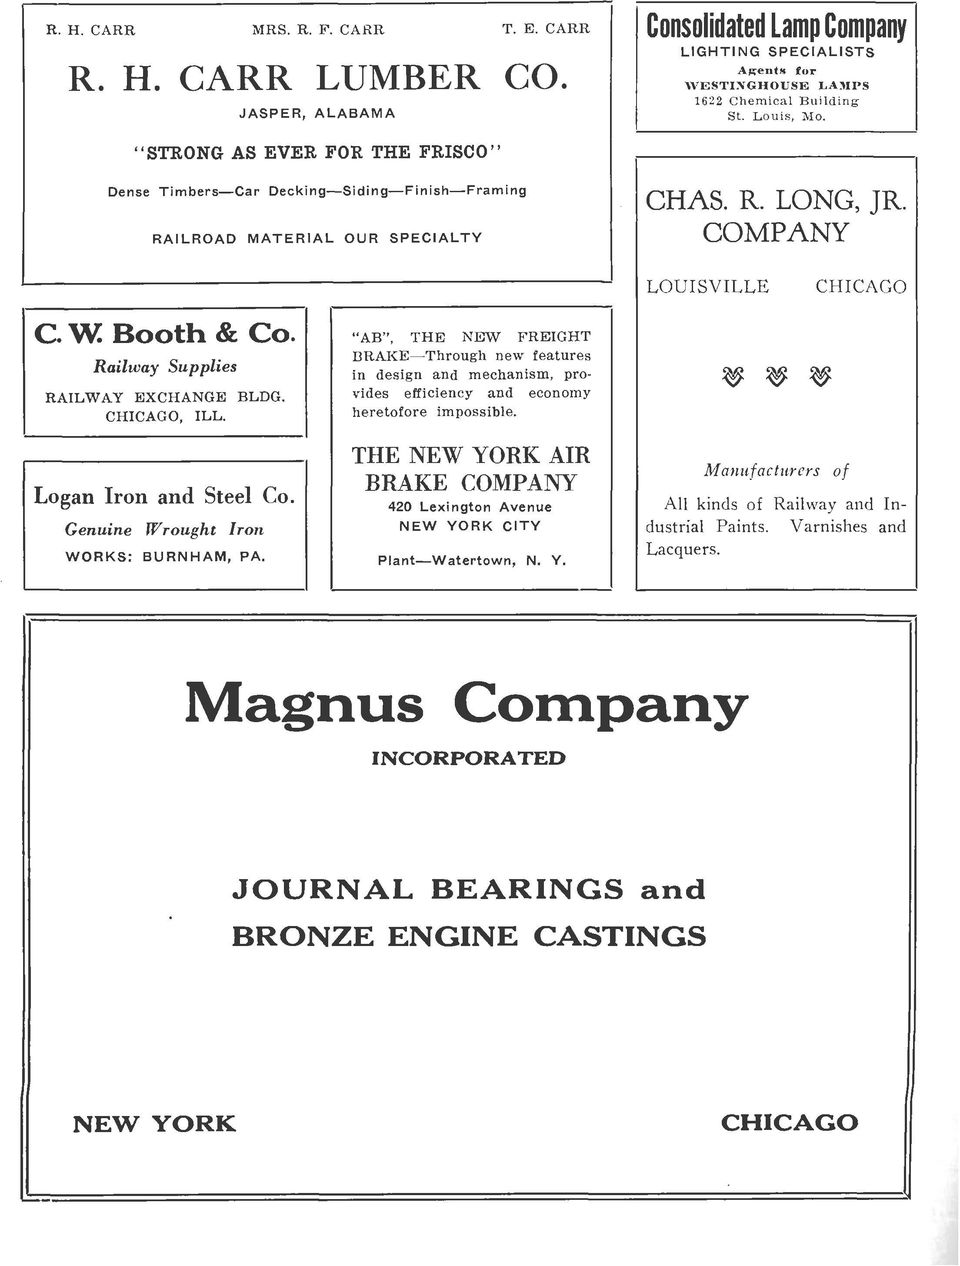 CHICAGO, ILL. Logan Iron and Steel Co. Genuine Wrought Iron WORKS: BURNHAM, PA.